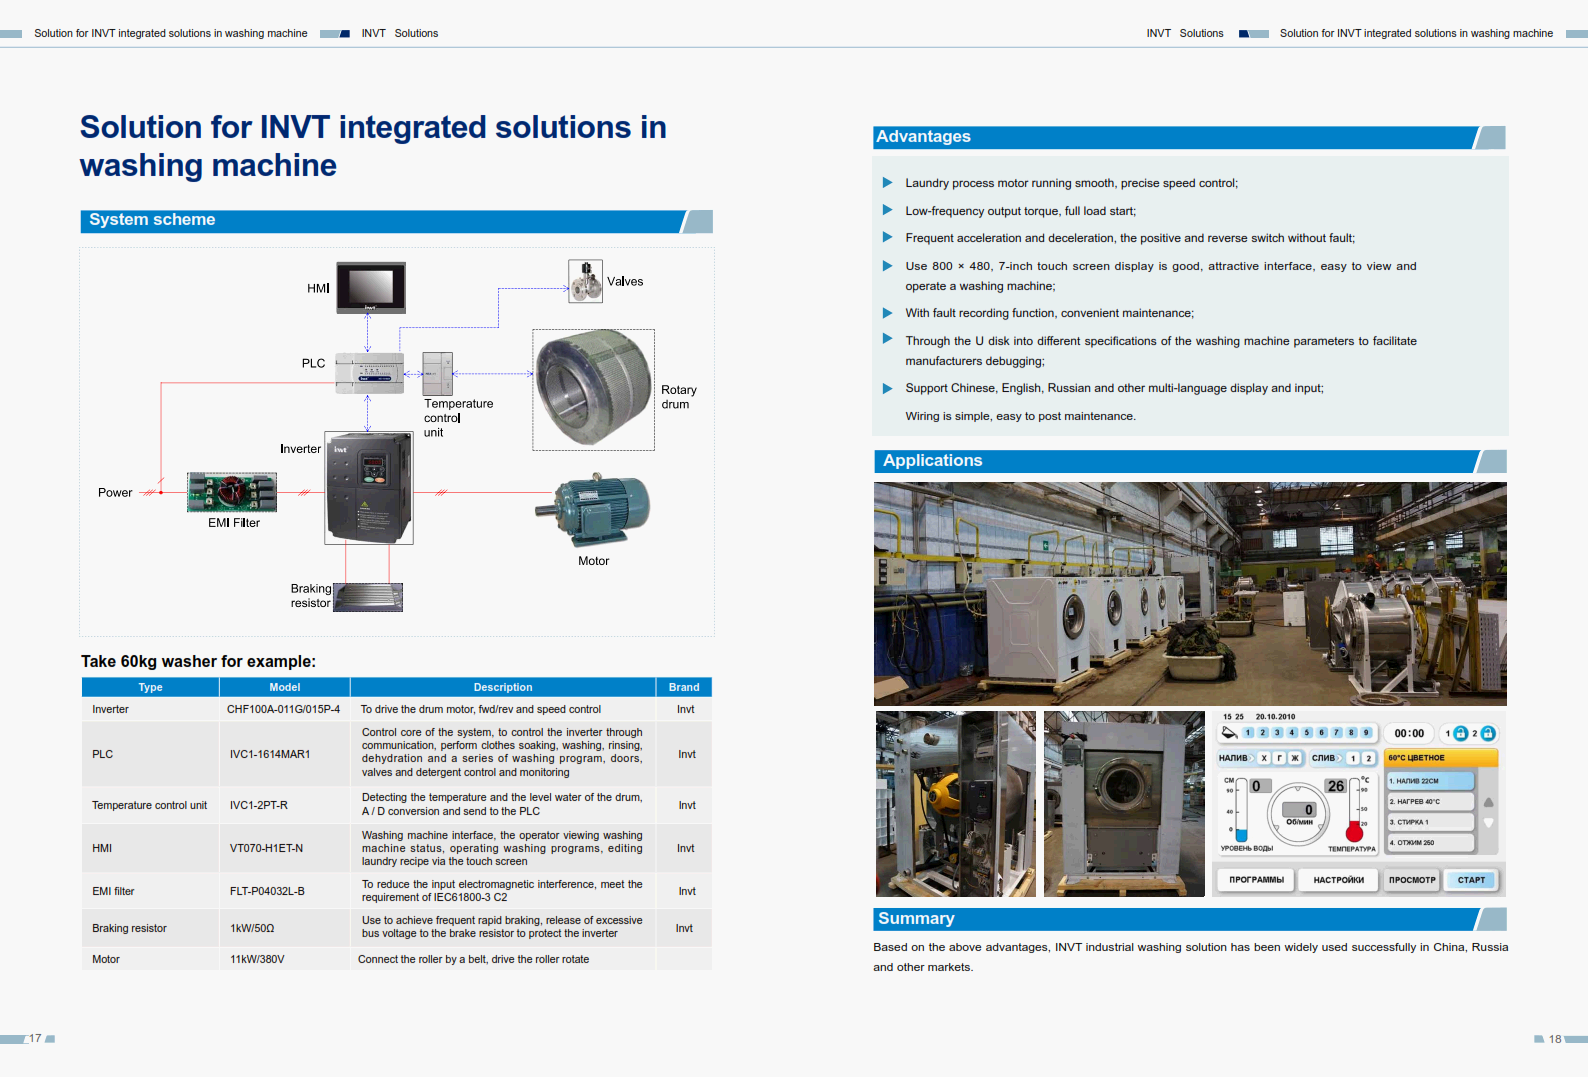 Solution for INVT integrated solutions in washing machine